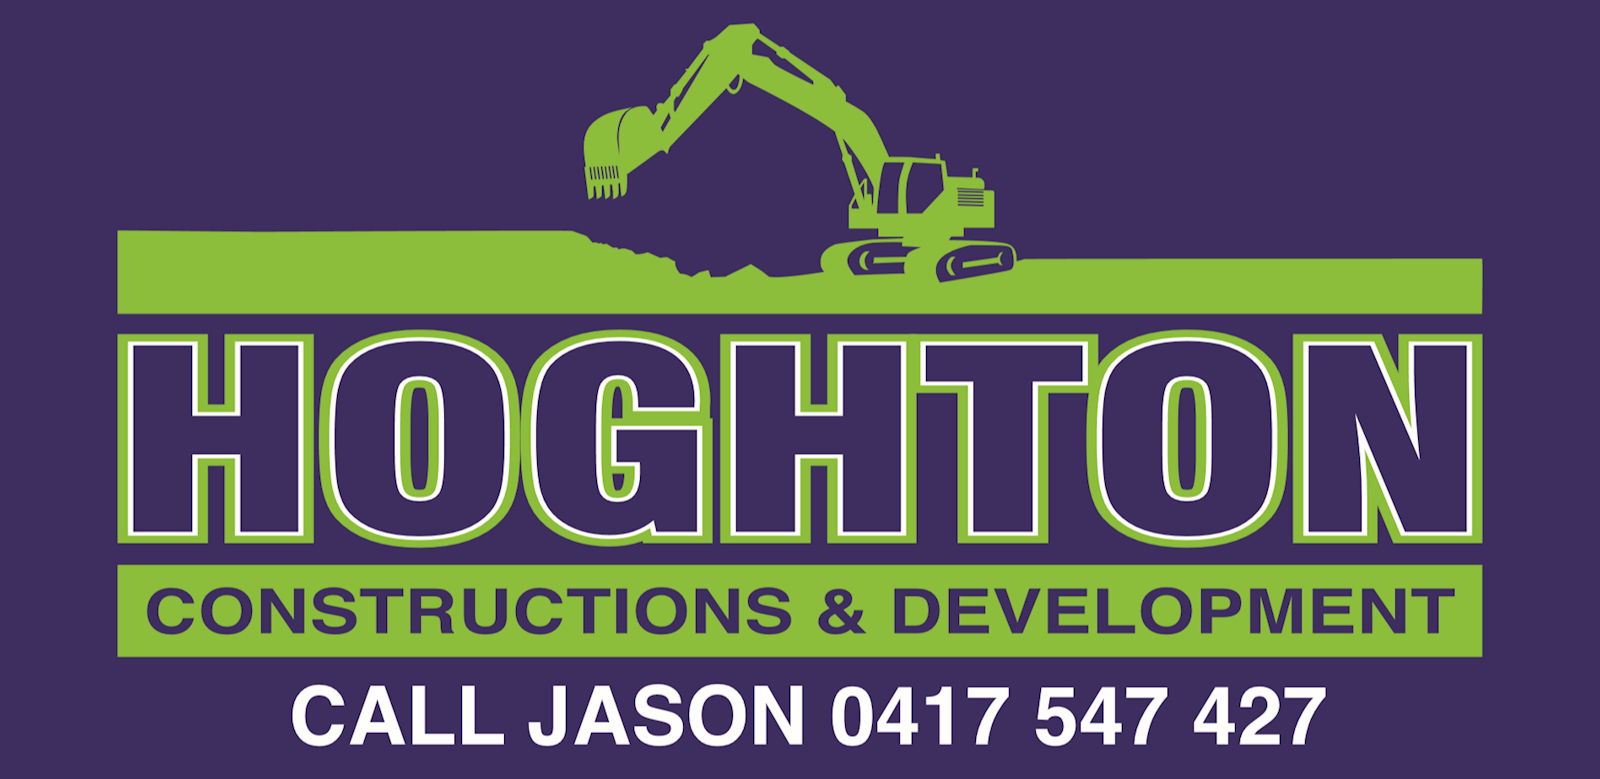 Hoghton Constructions & Development